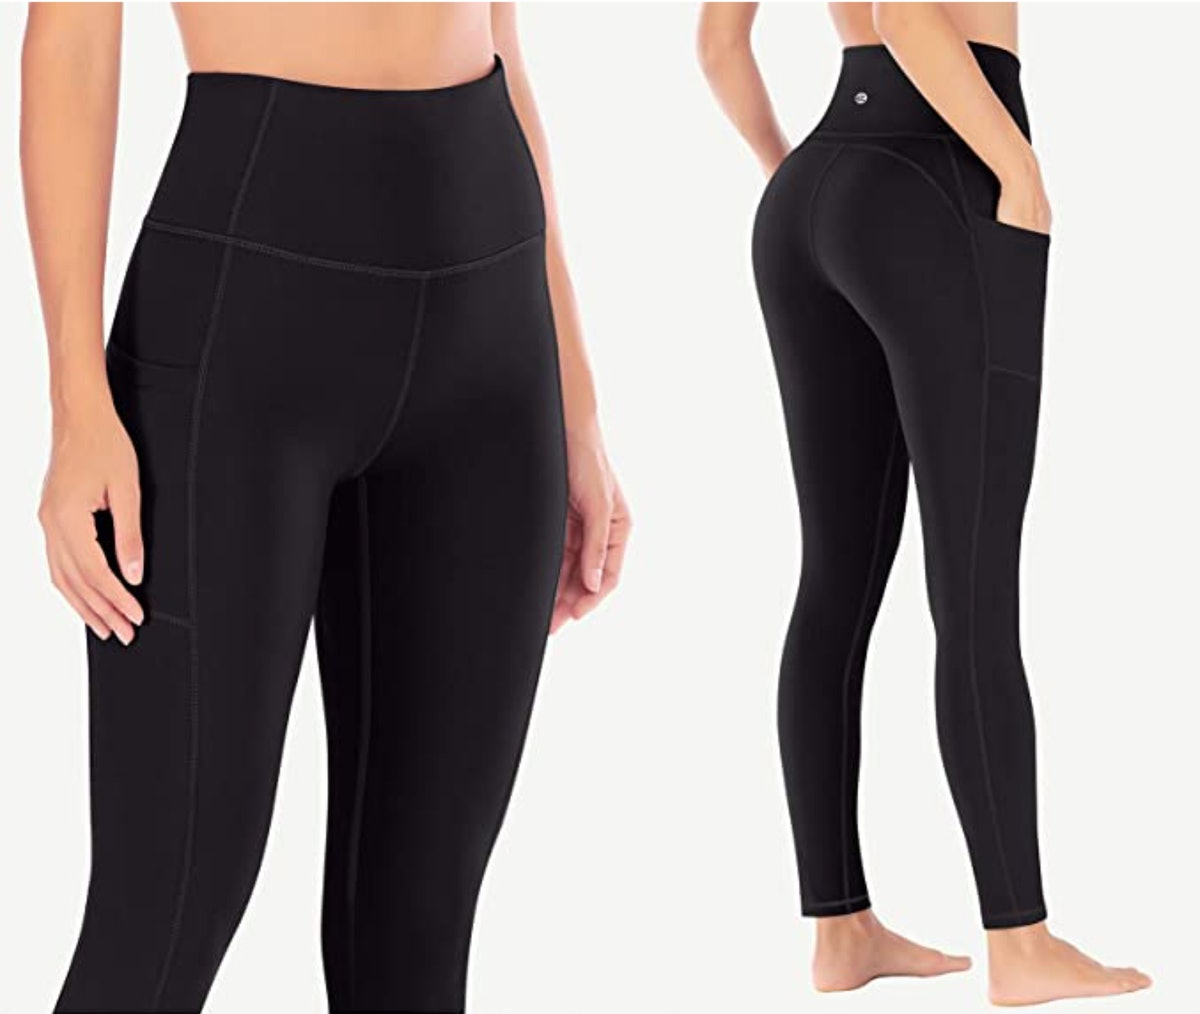 Women's Yoga Pants with Pockets